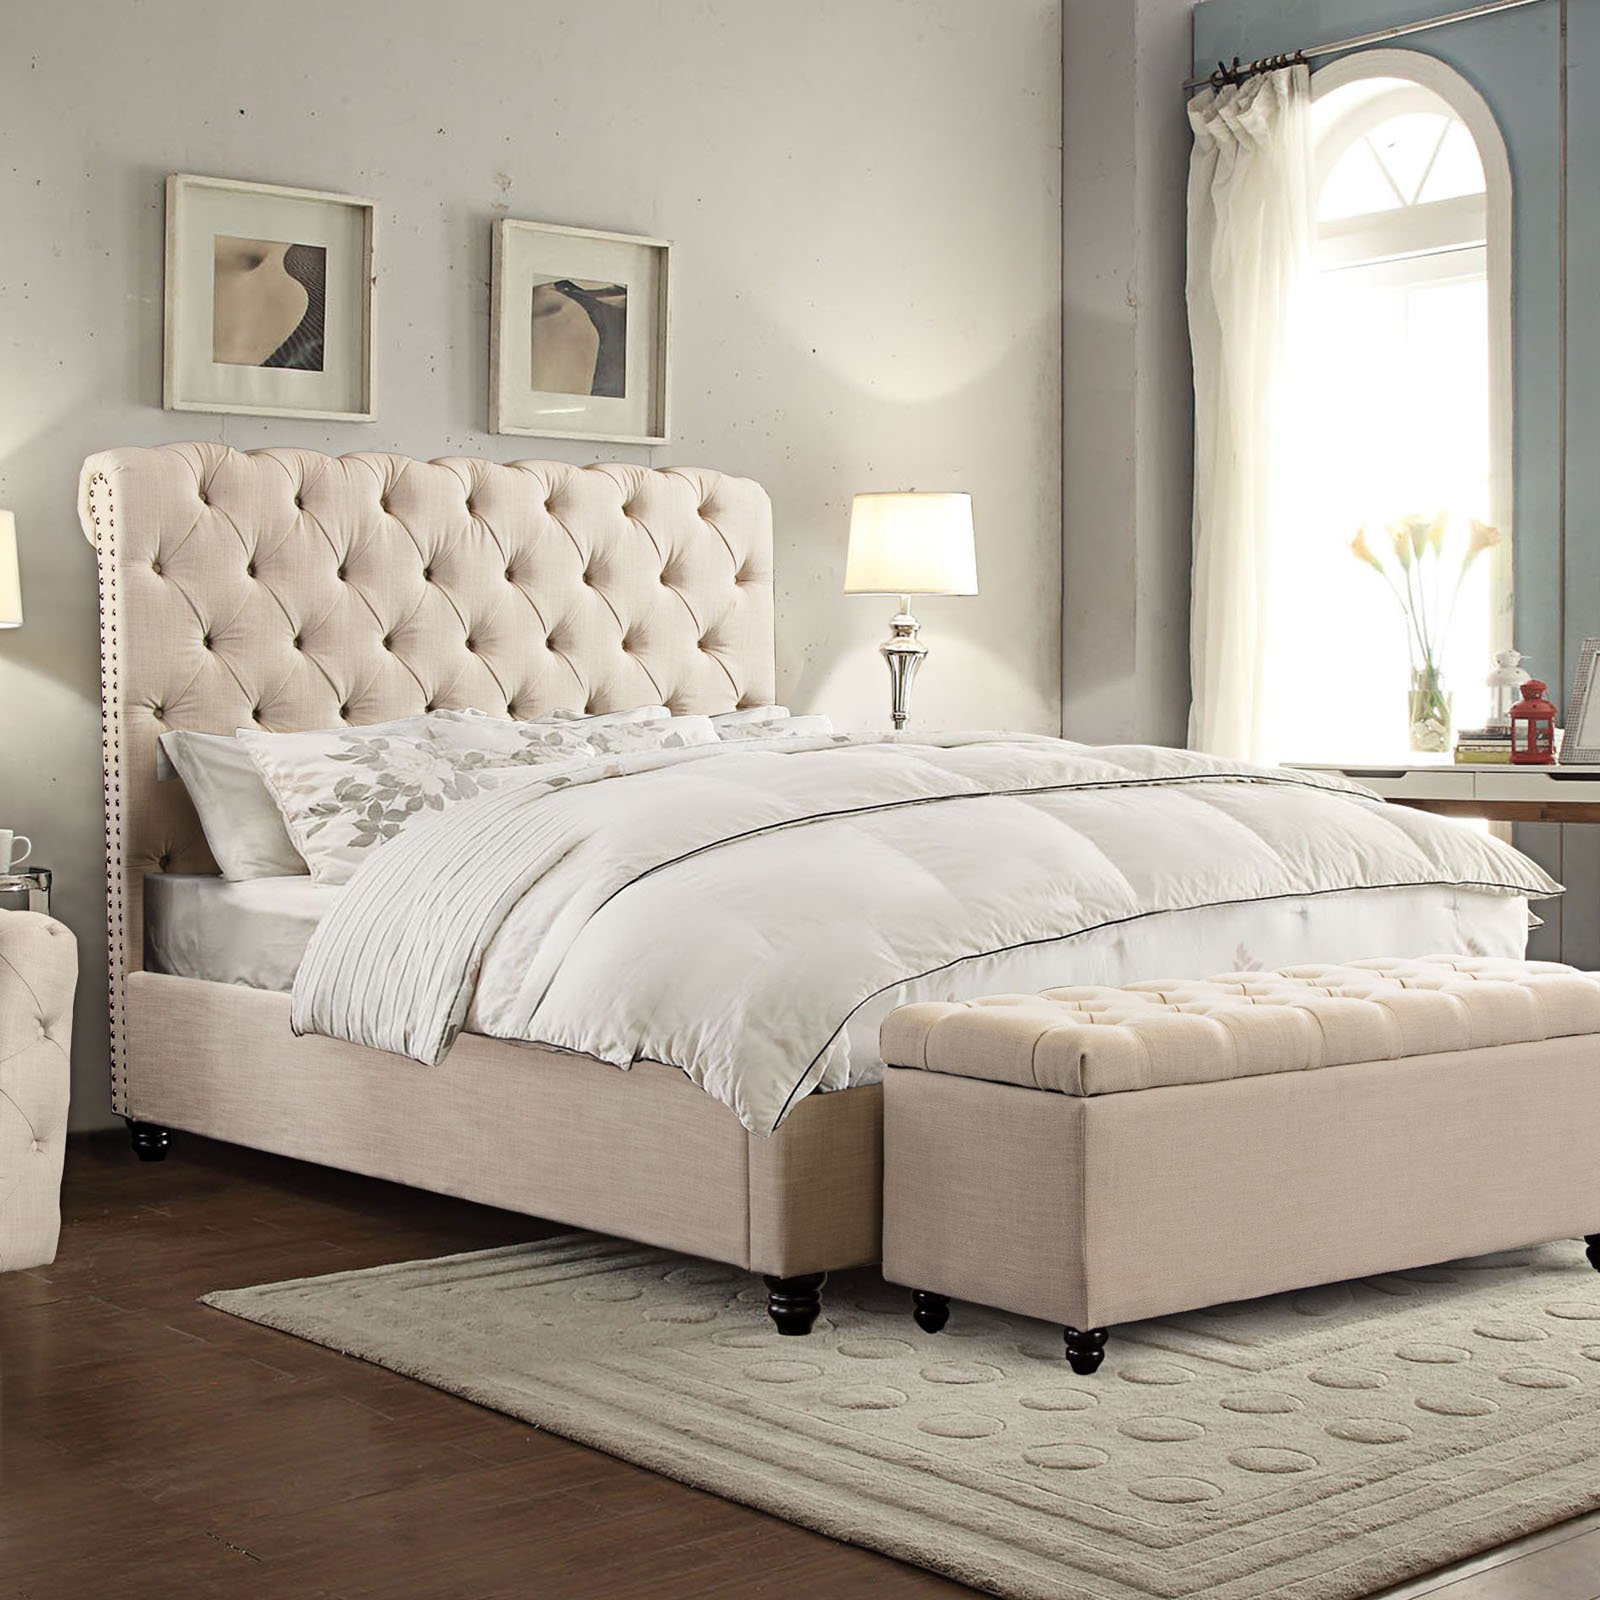 Diamond Sofa Chesterfield Tufted Bed with Scrolled Headboard and Nail Head Accent - Sand Linen